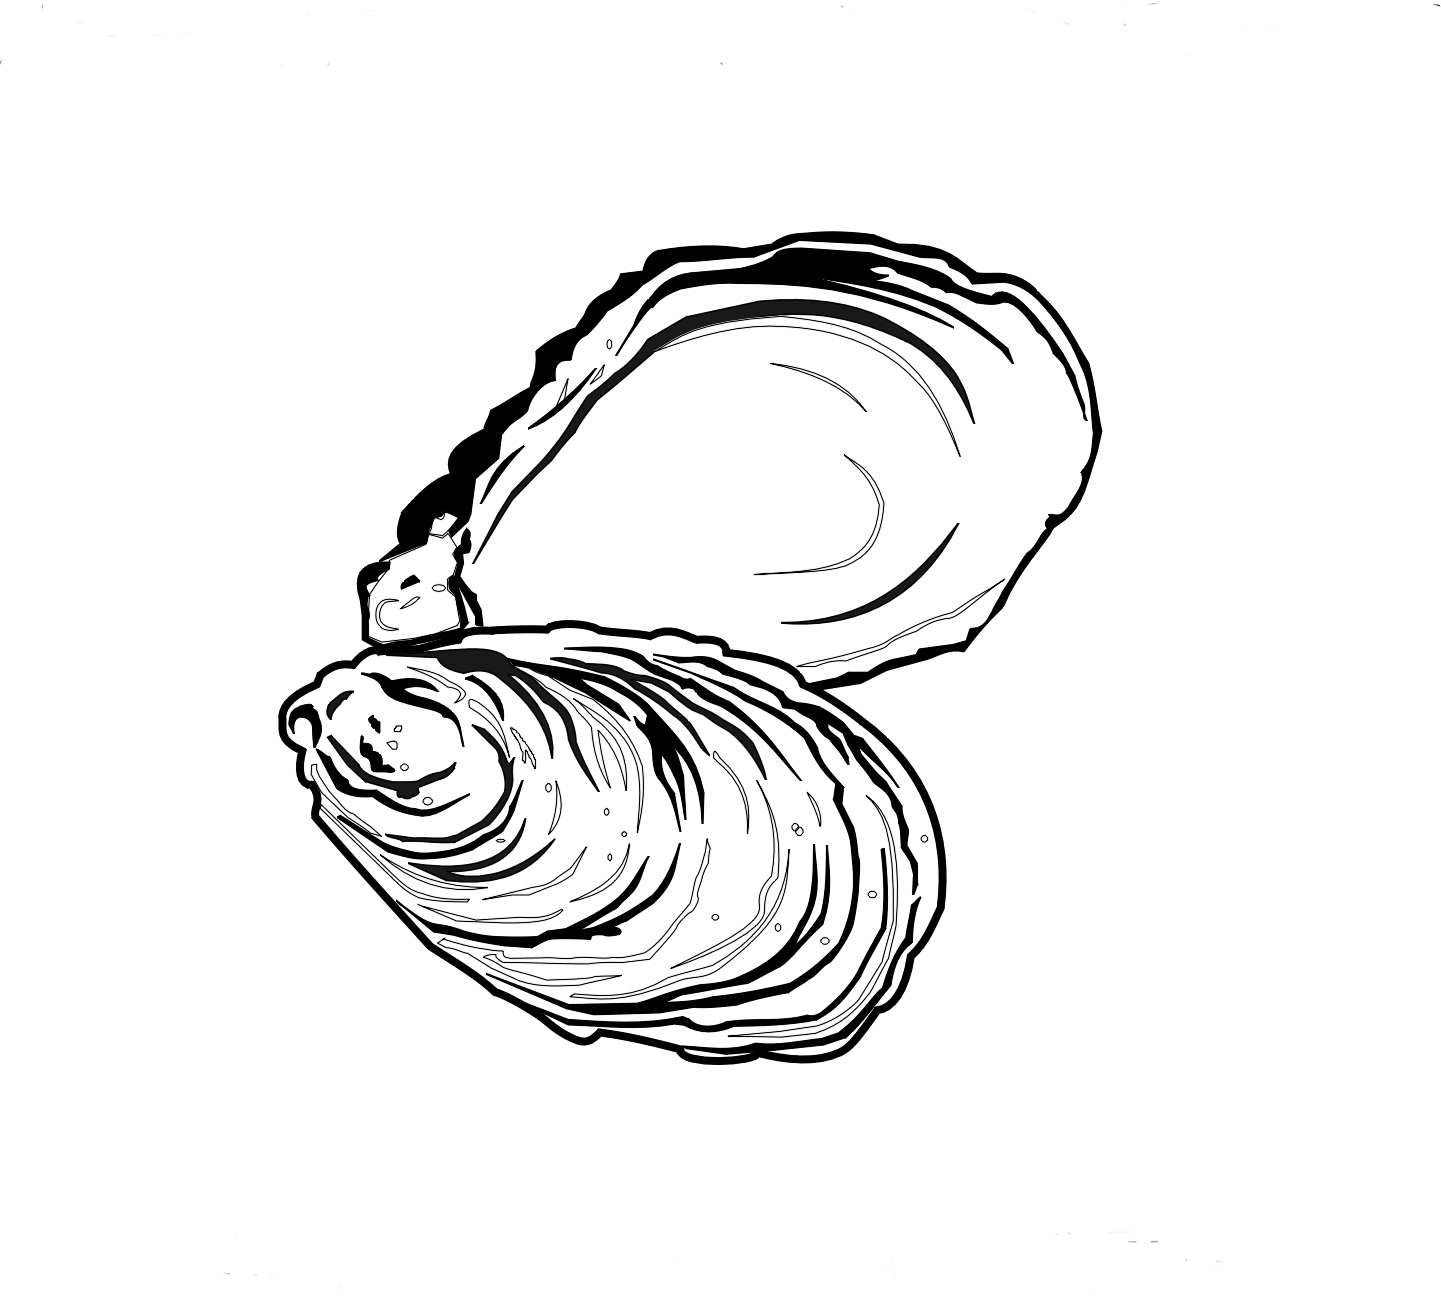 Oyster clipart black and white 5 » Clipart Station.